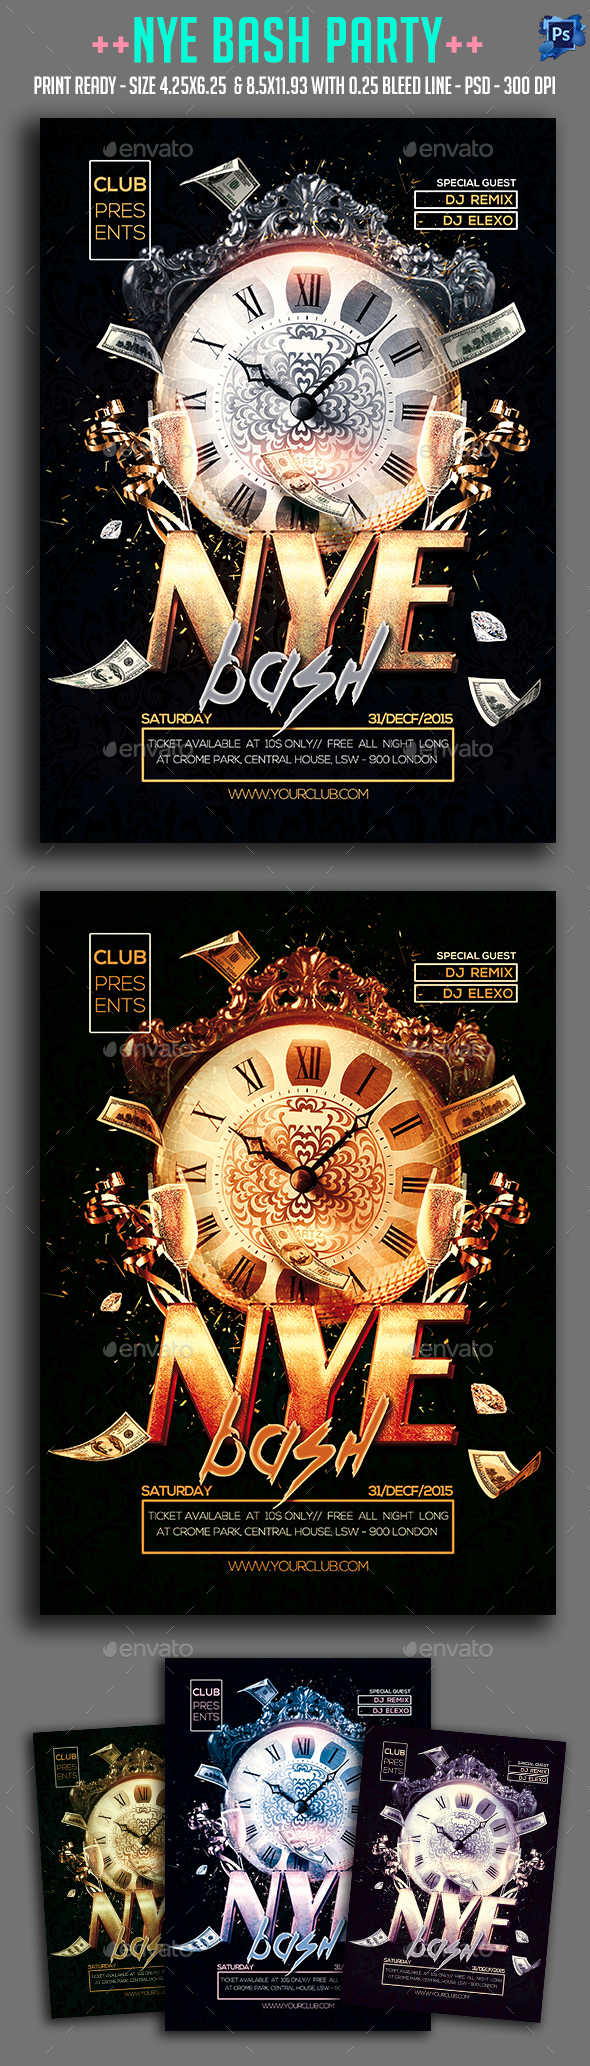 Nye Bash Party Flyer - Clubs & Parties Events